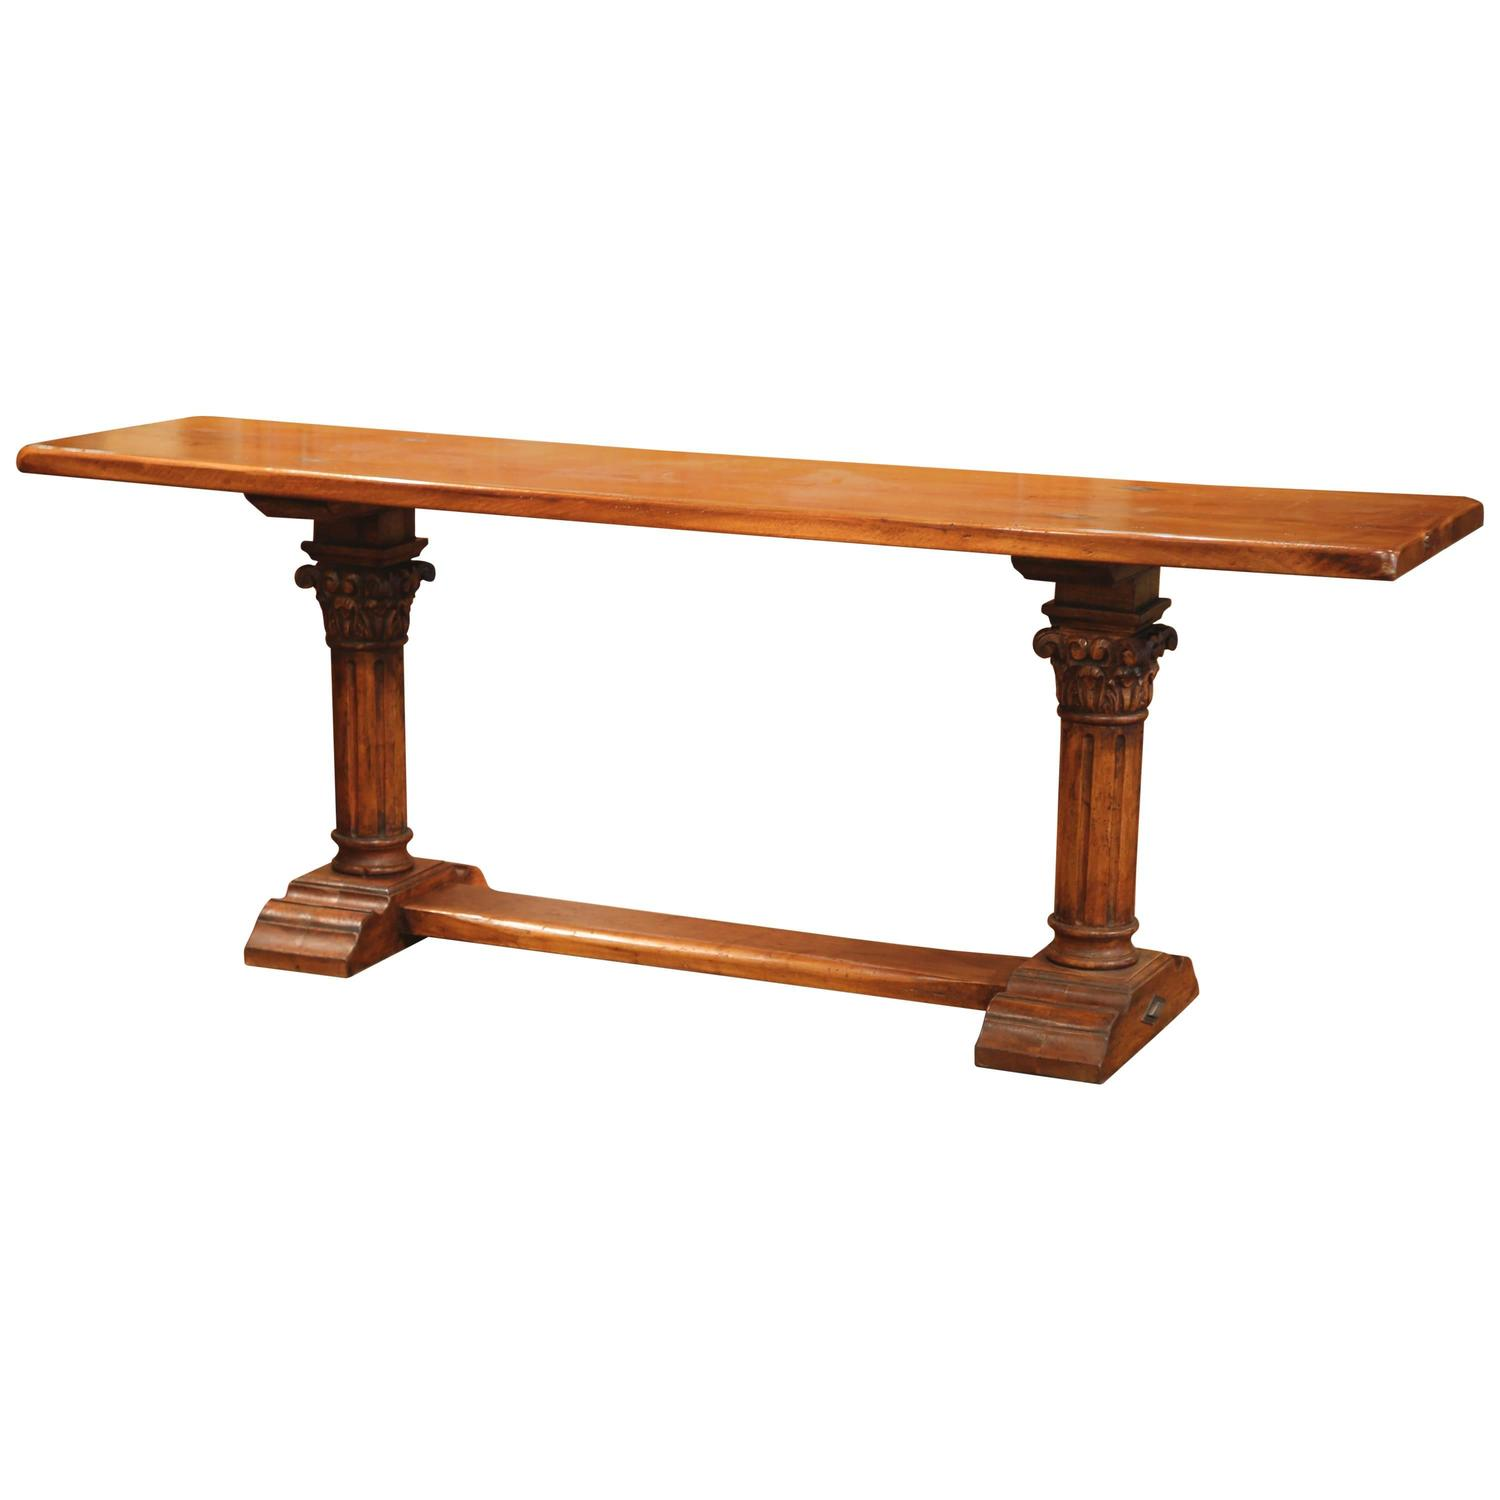 Fly Console Table with Two Wings Brass Legs Diamond Shaped Glass ...